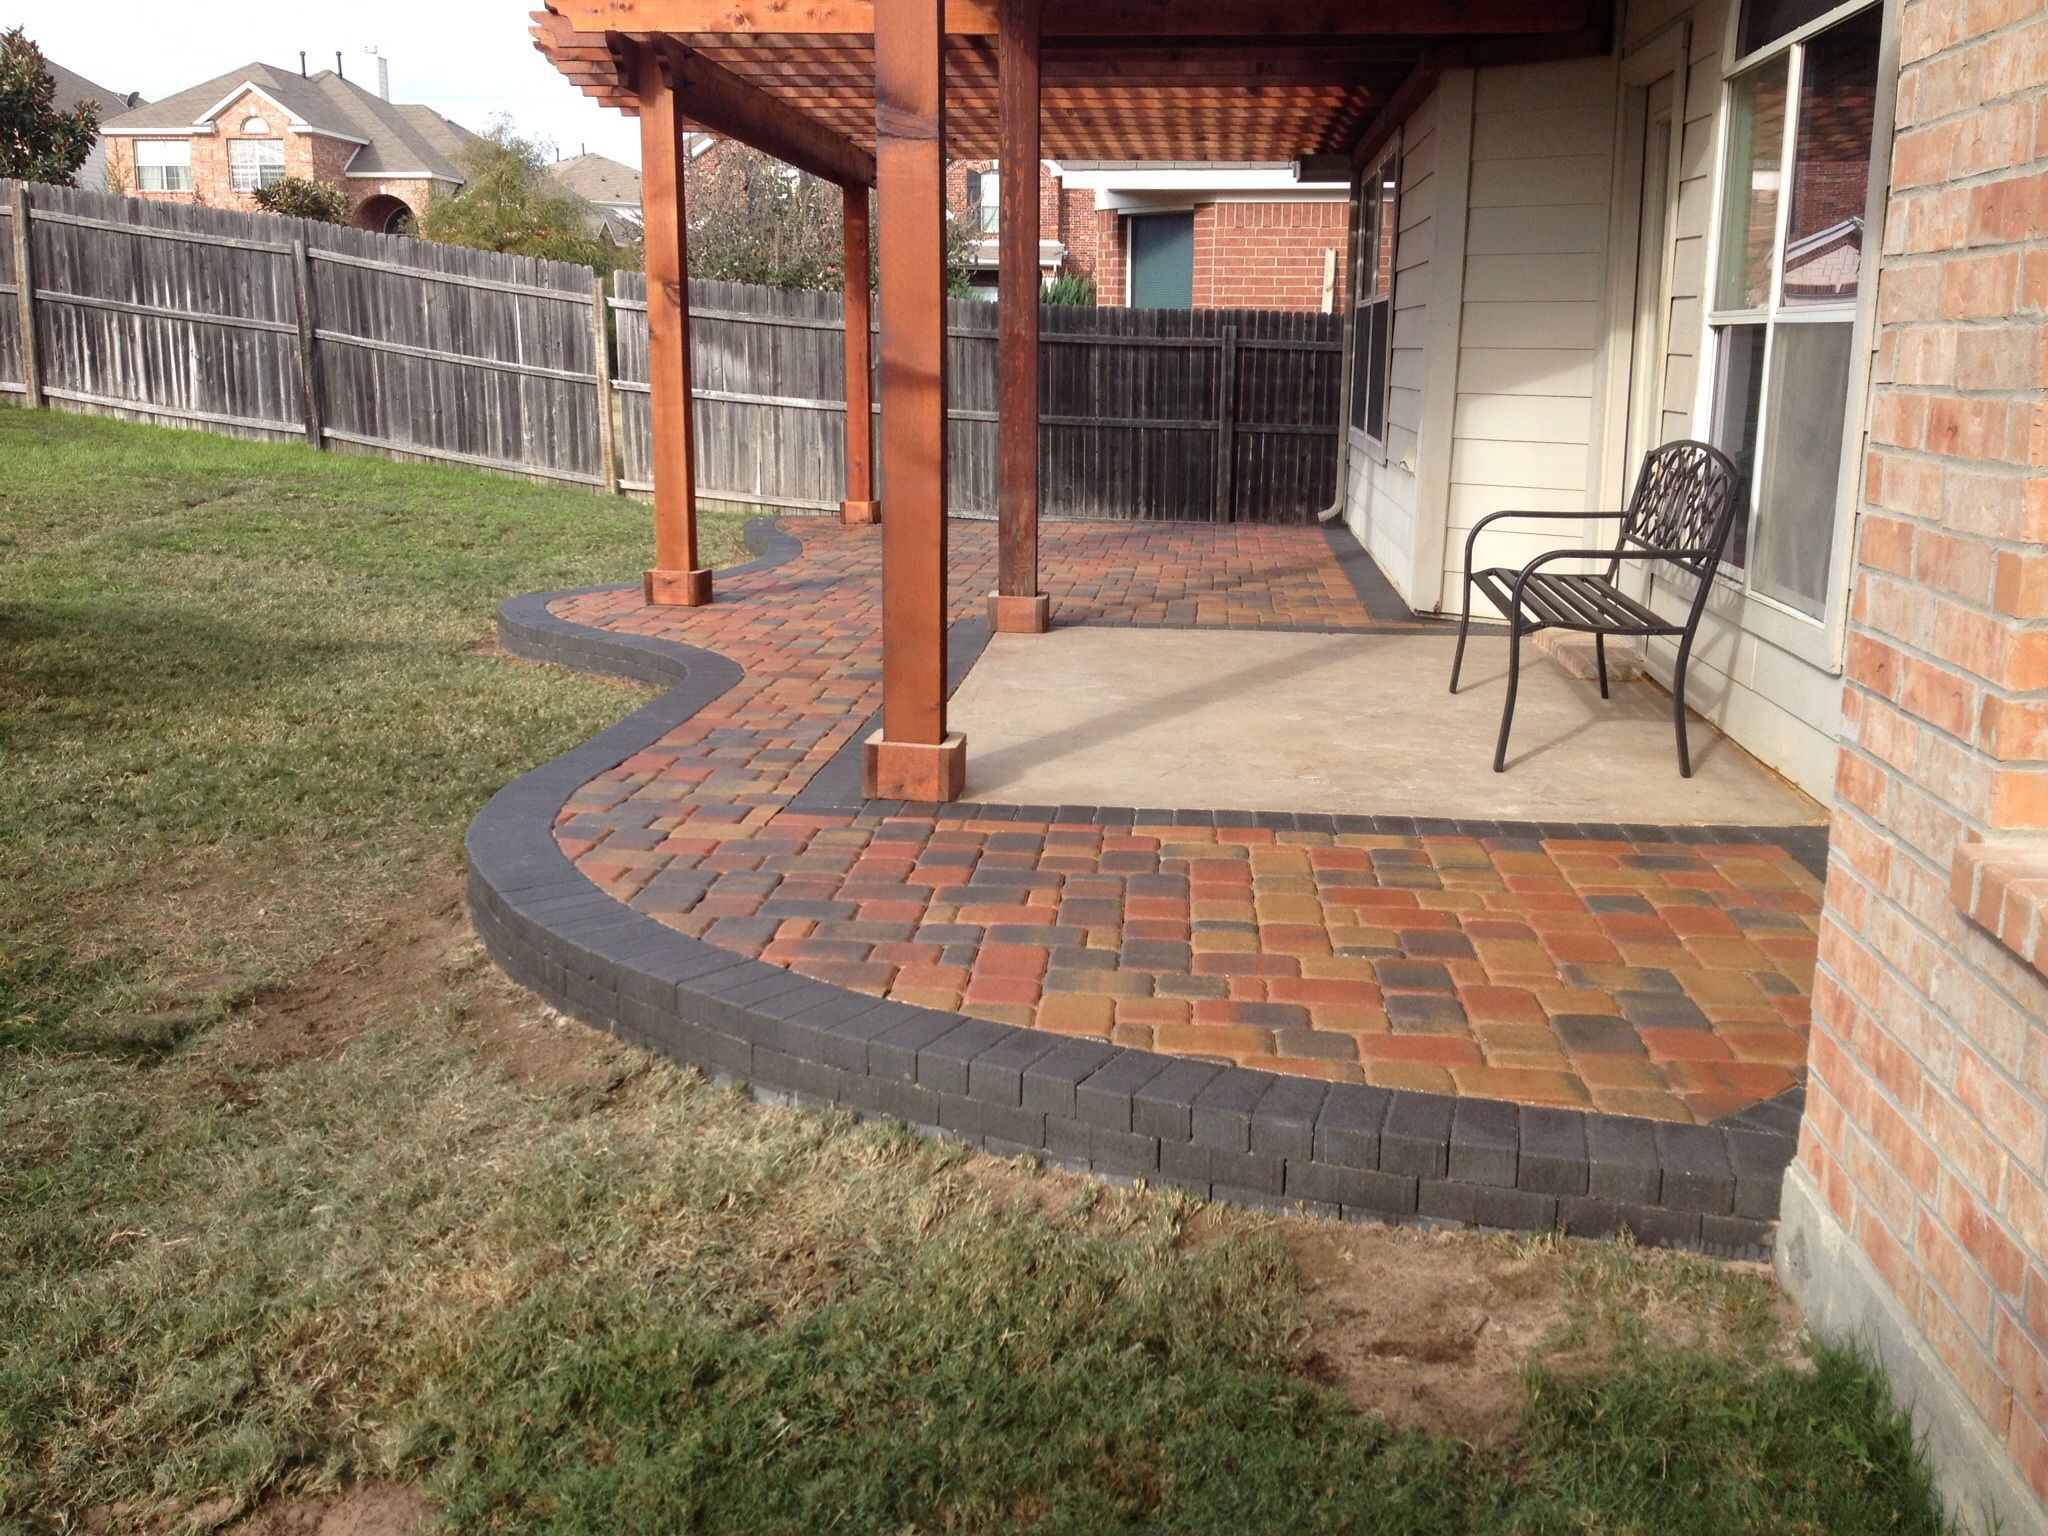 multicolored paver patio installed around an existing concrete